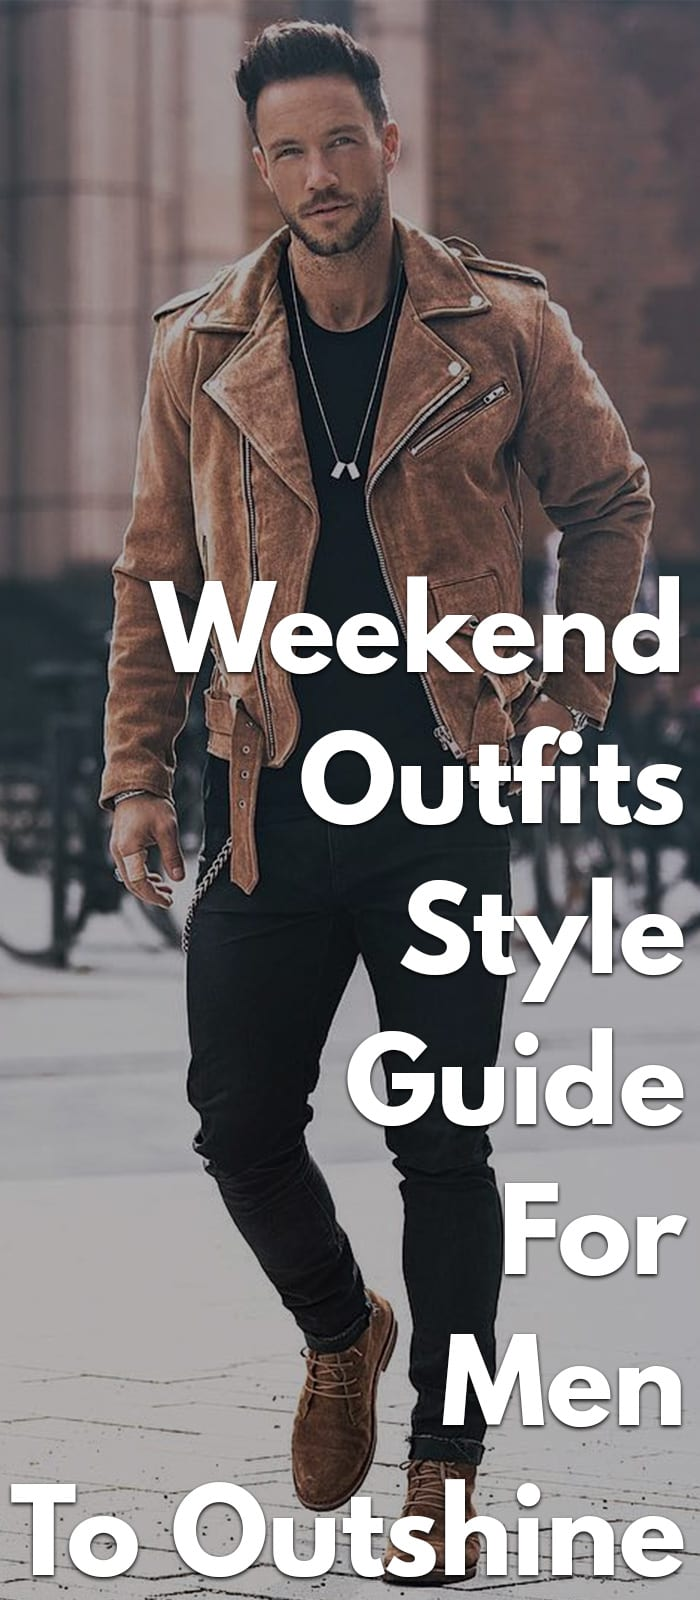 Weekend-Outfits-Style-Guide-For-Men-To-Outshine.